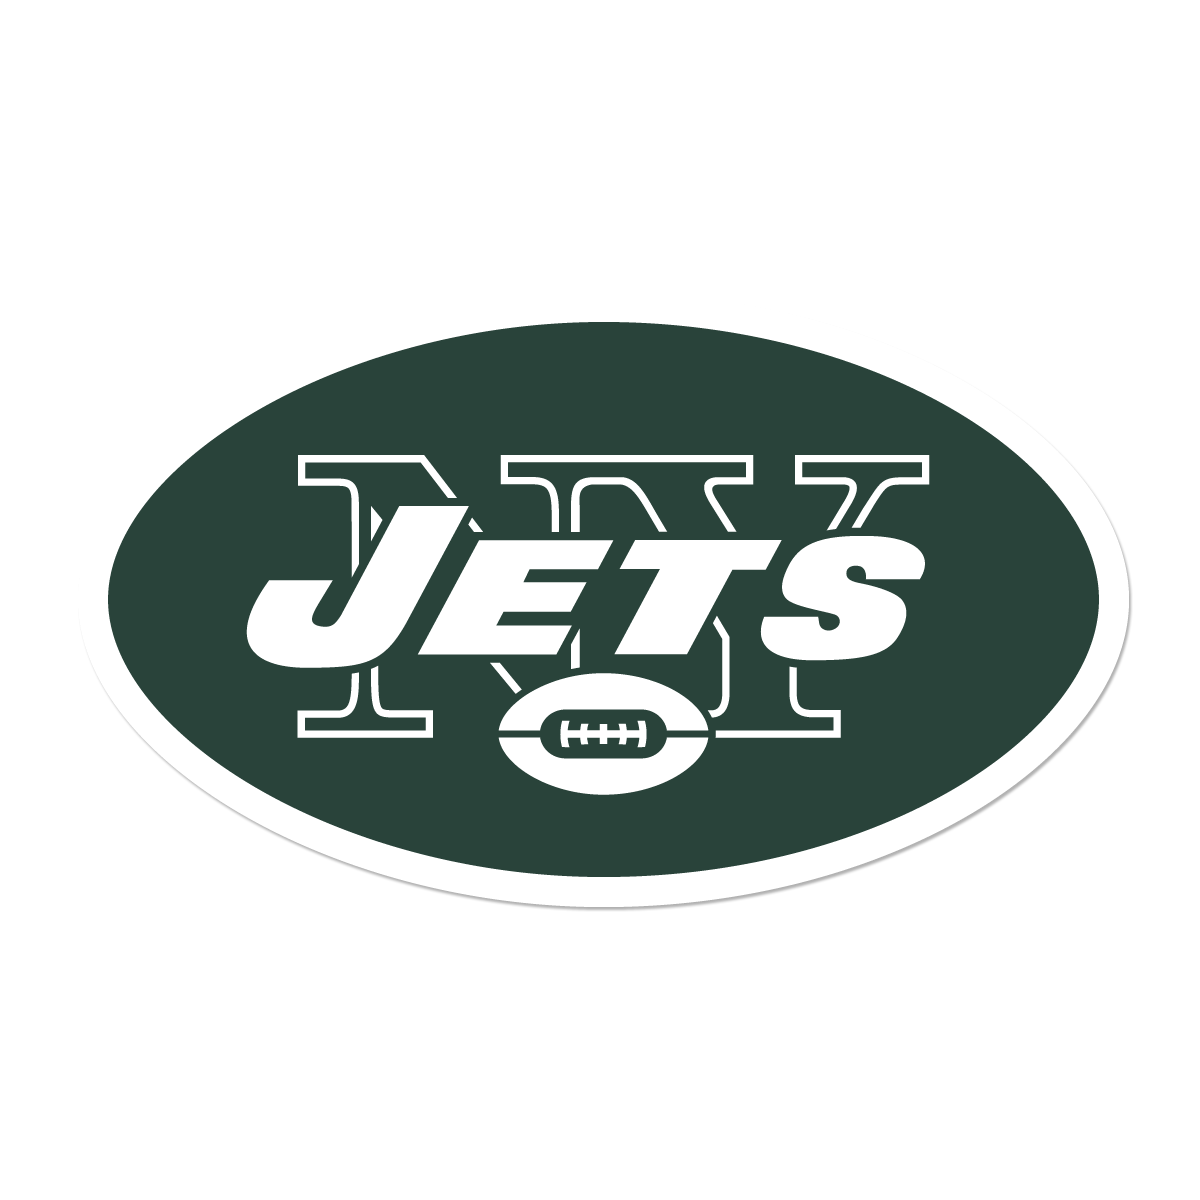 Ny giants football clipart banner transparent stock Will The New York Jets Purge Of 2017 Lead To A Binge In 2018 ... banner transparent stock